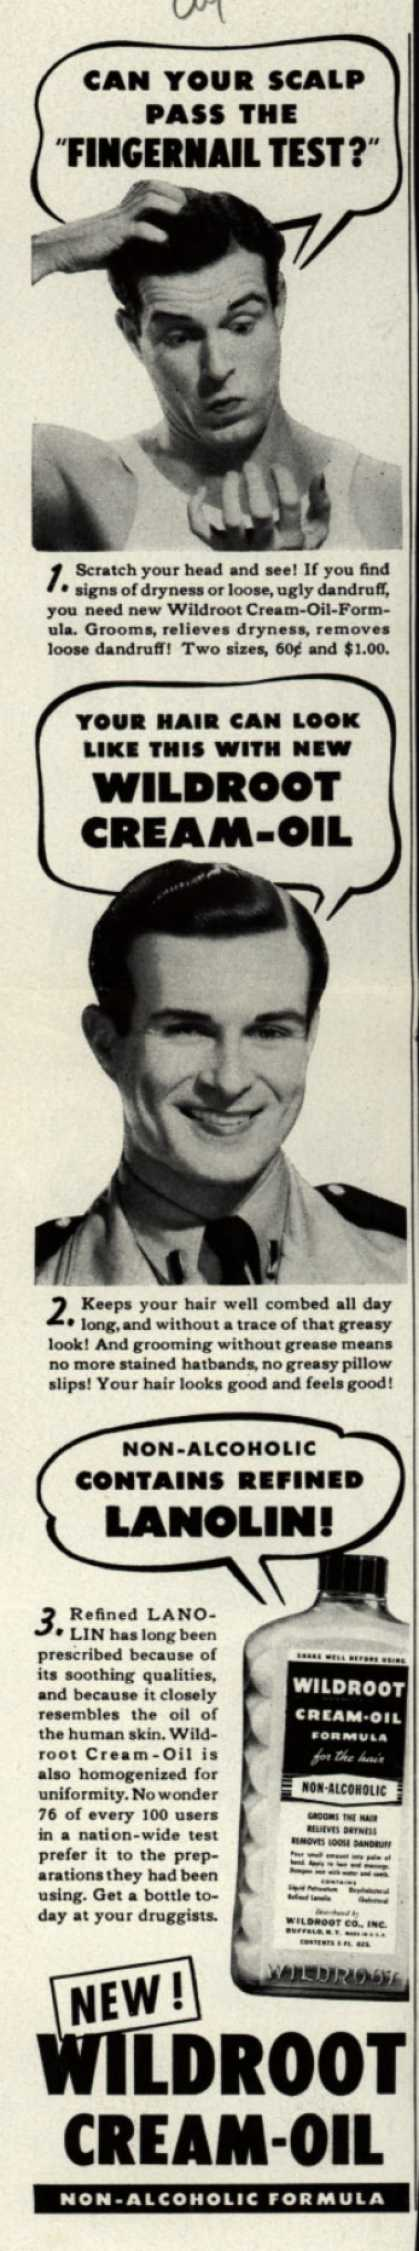 Wildroot Company's Wildroot Cream-Oil – Can Your Scalp Pass The Fingernail Test? (1943)